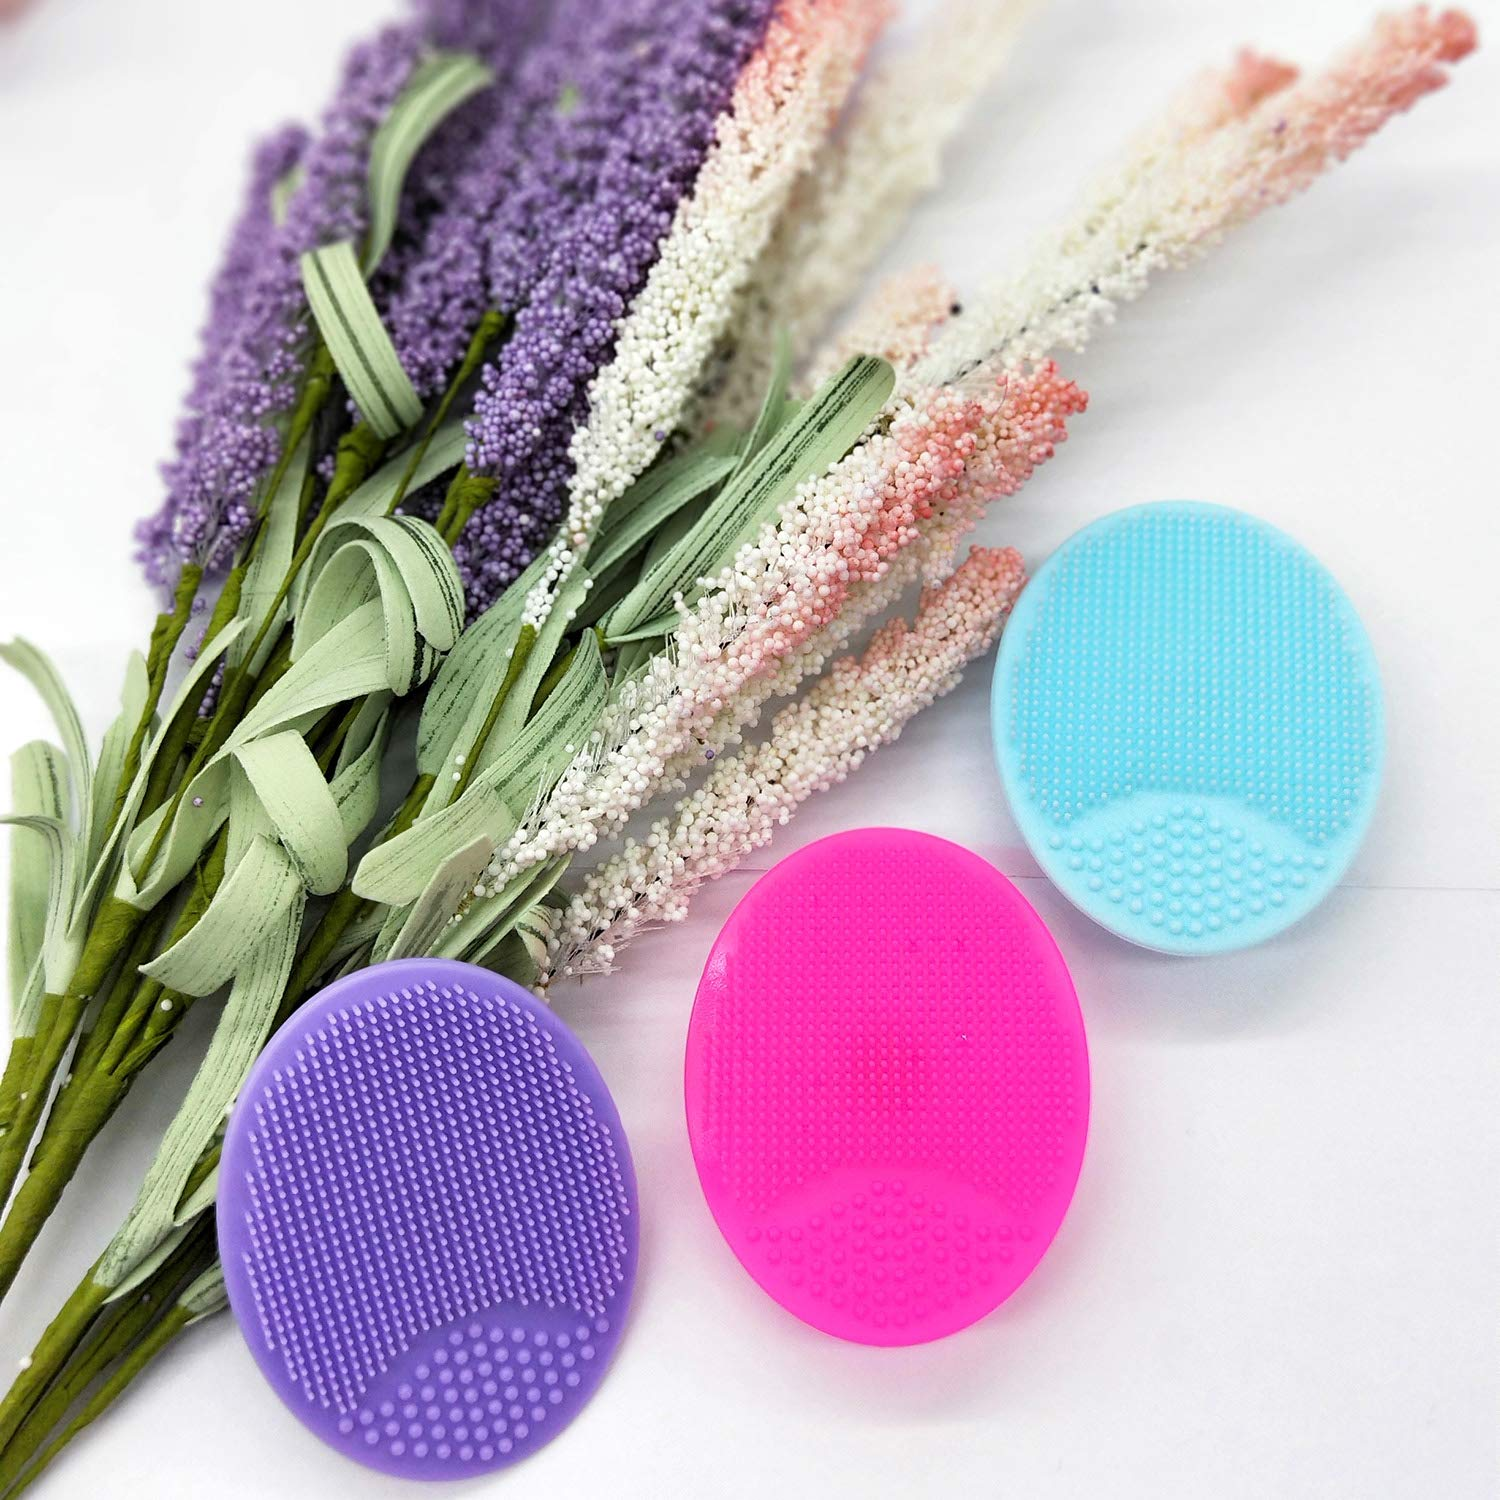 HieerBus Facial Cleansing Brush,Soft Silicone Face Scrubber,Facial Exfoliation Scrub for Massage Pore Cleansing Blackhead Removing Deep Scrubbing for All Kinds of Skins (2ed-Blue+Red): Beauty